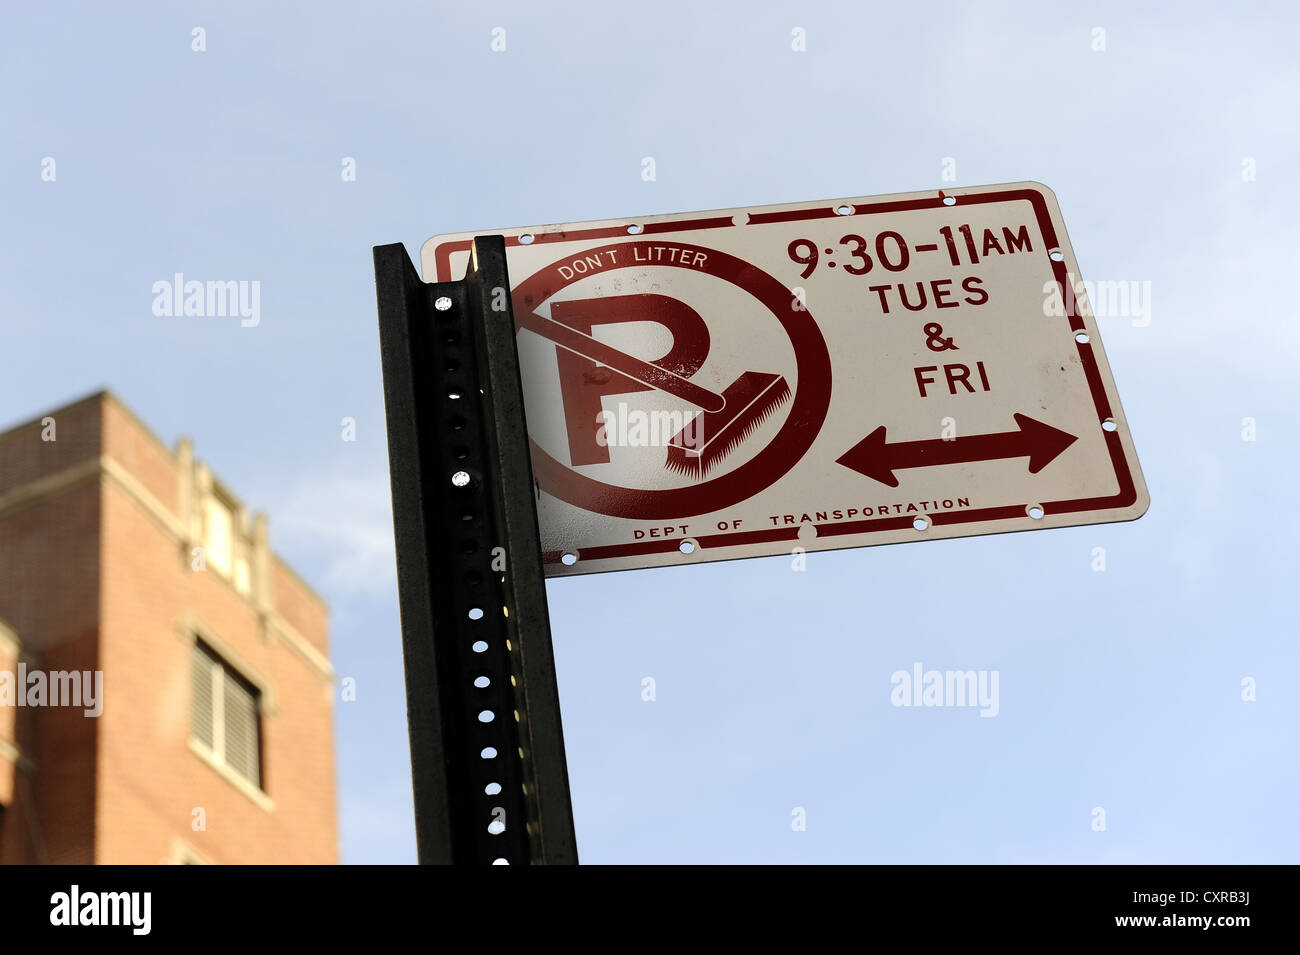 No parking sign, Harlem, Manhattan, New York City, New York, USA, North America - Stock Image